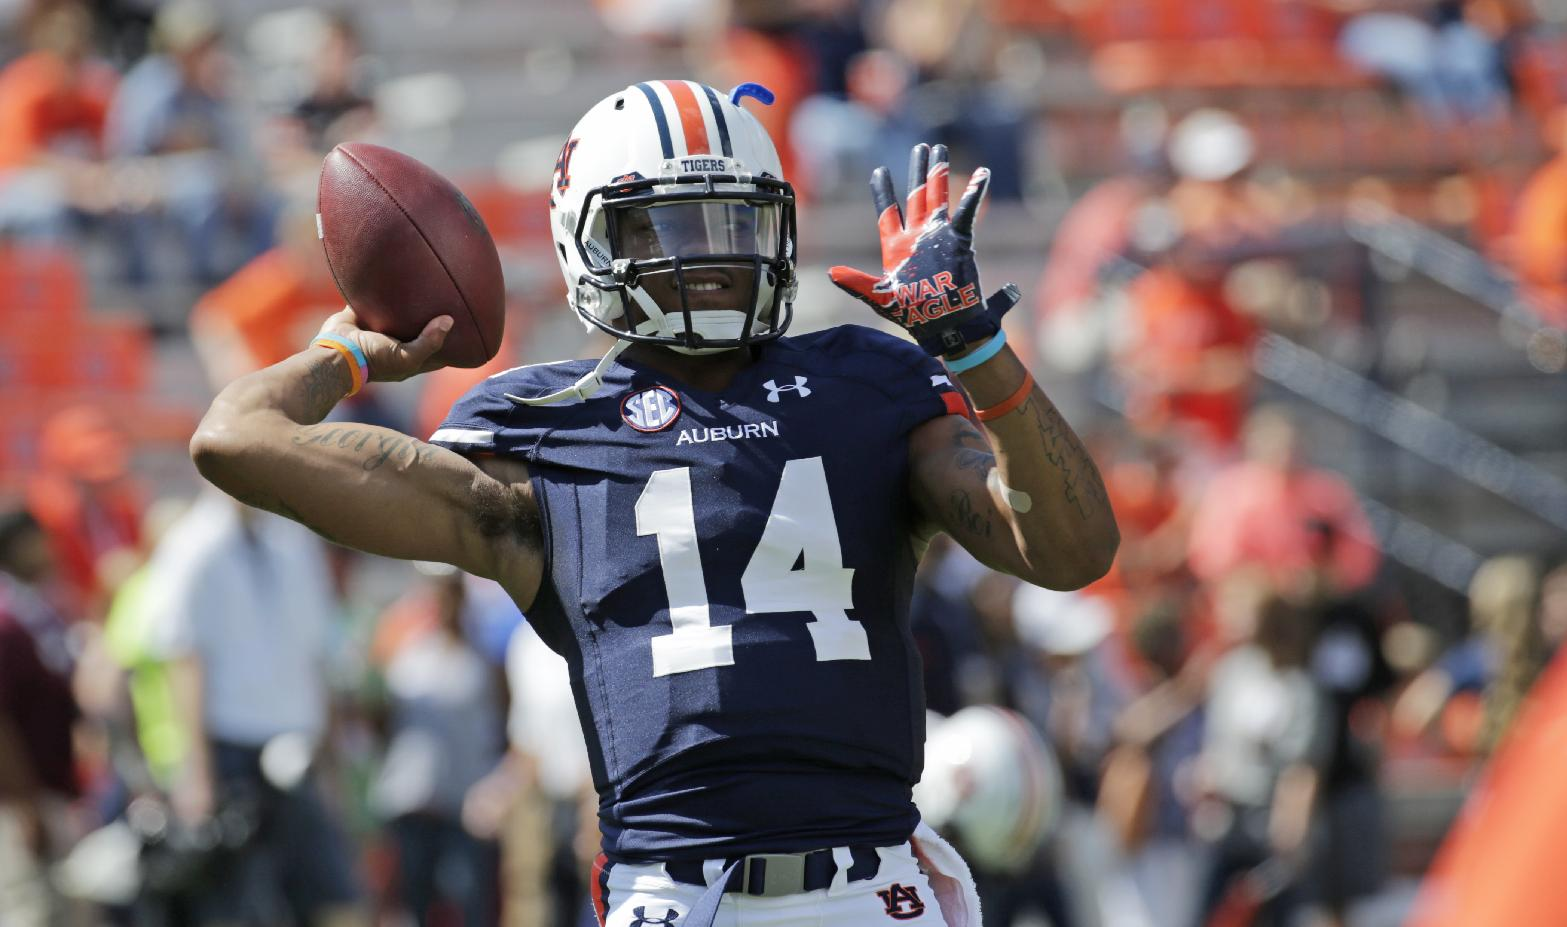 Auburn quarterback Nick Marshall (14) warms up prior to the start of an NCAA college football game against Western Carolina in Auburn, Ala., Saturday, Oct. 12, 2013